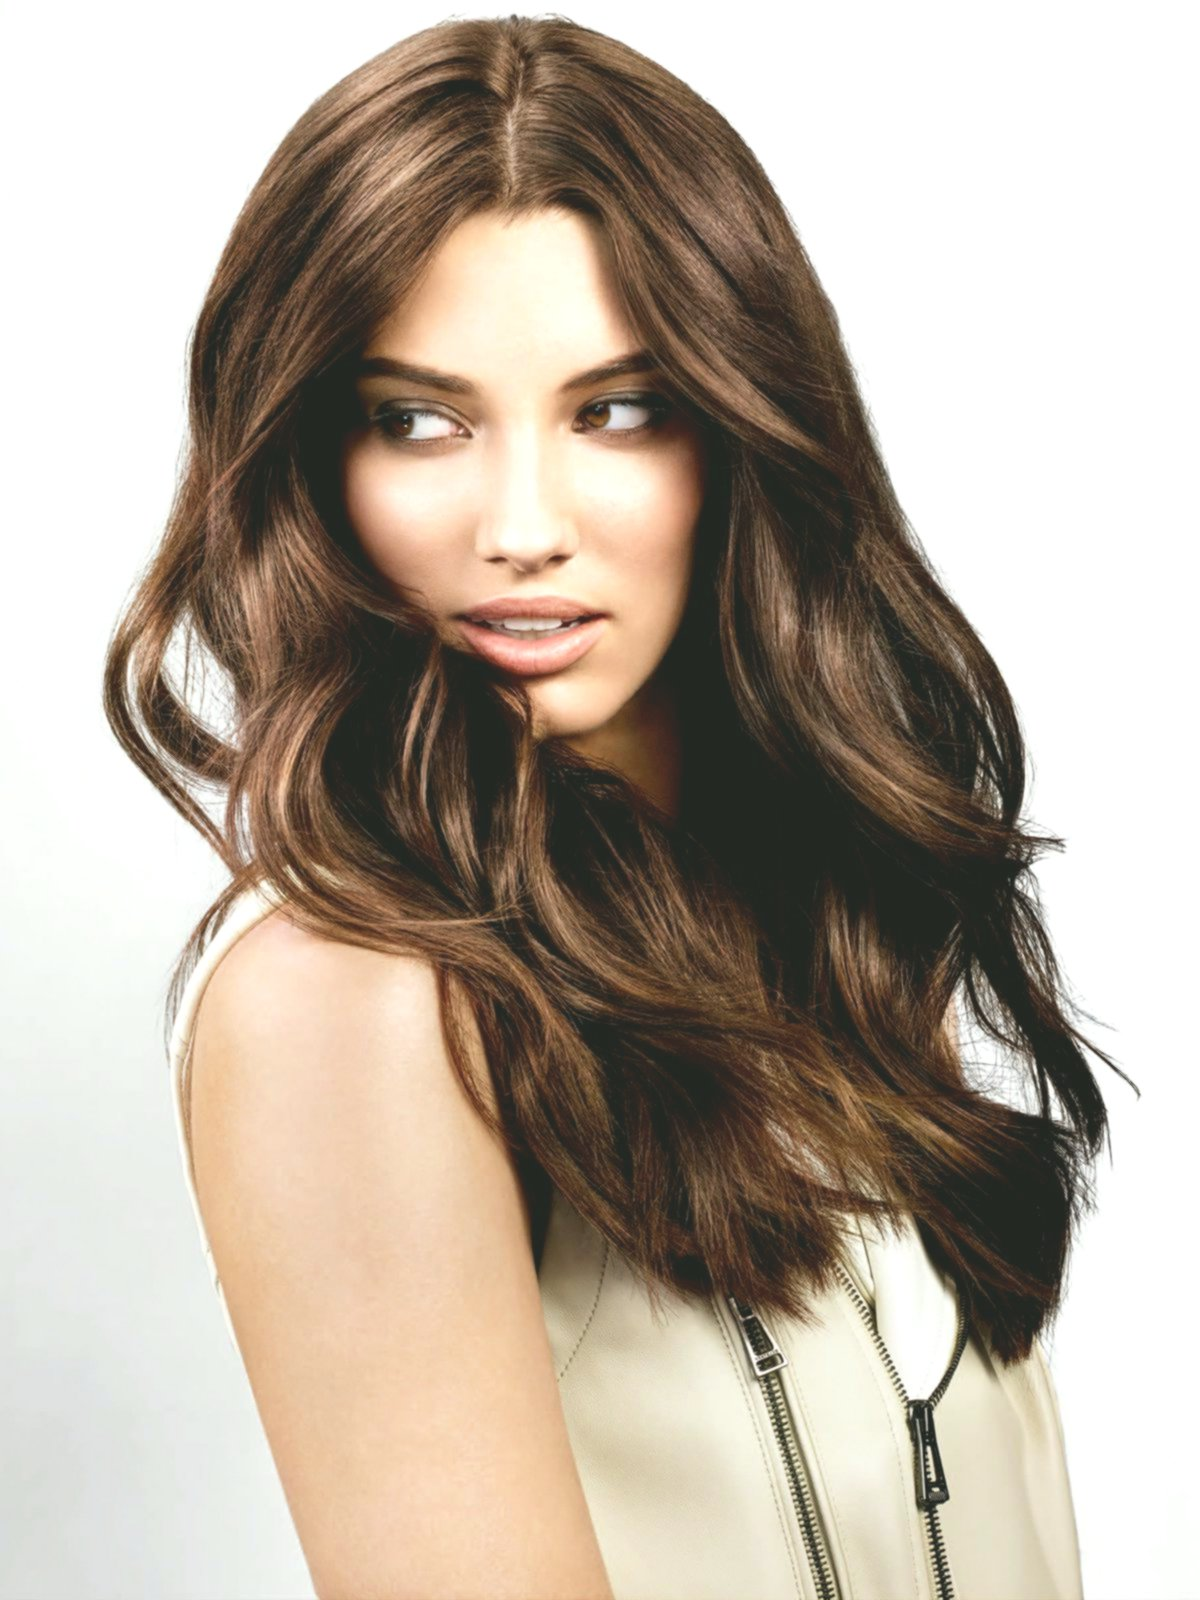 luxury brown tones hair color palette ideas Best Of Brown Tones Hair Color Palette Photography